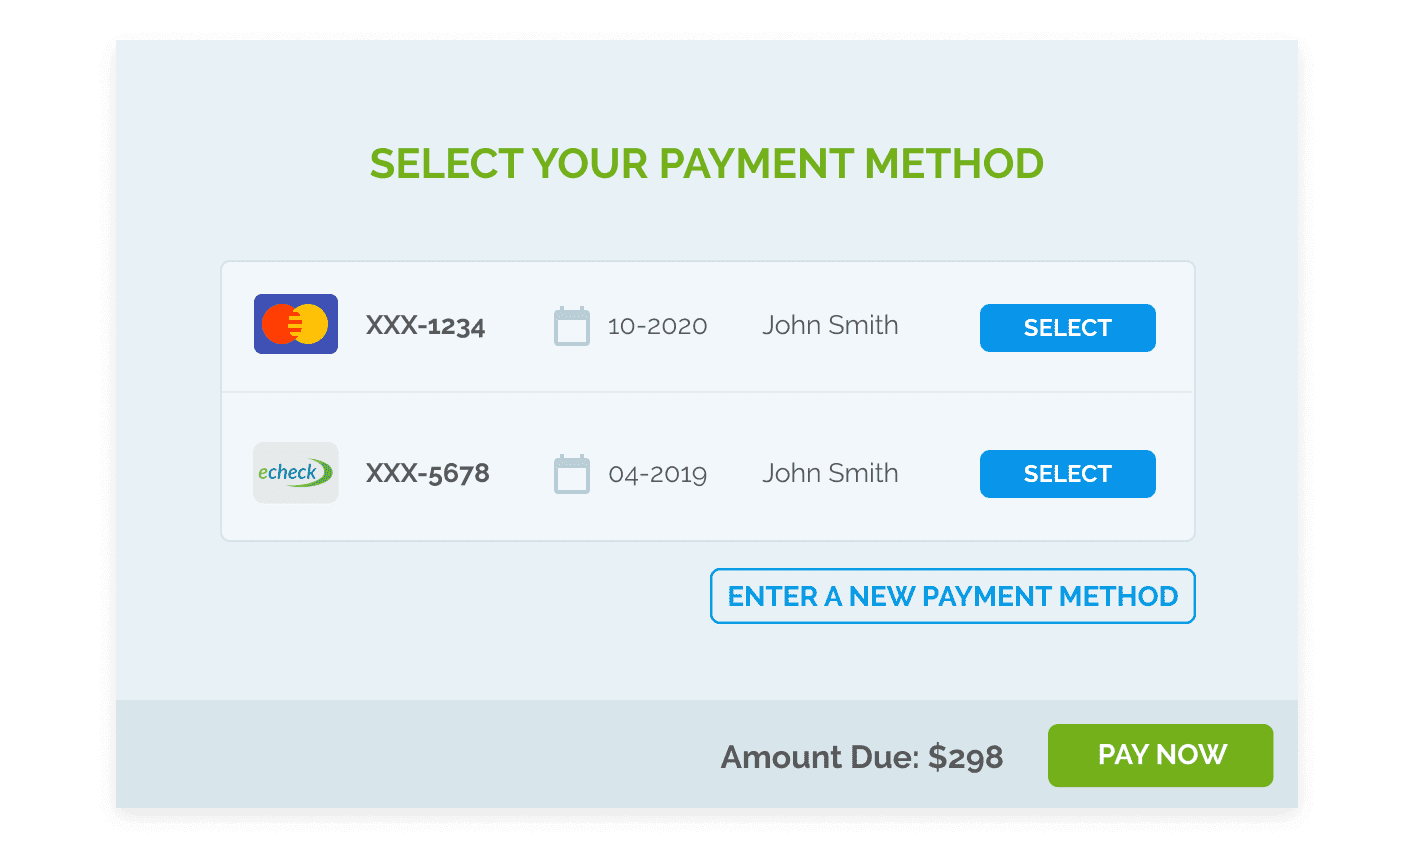 SAVE PAYMENT INFORMATION